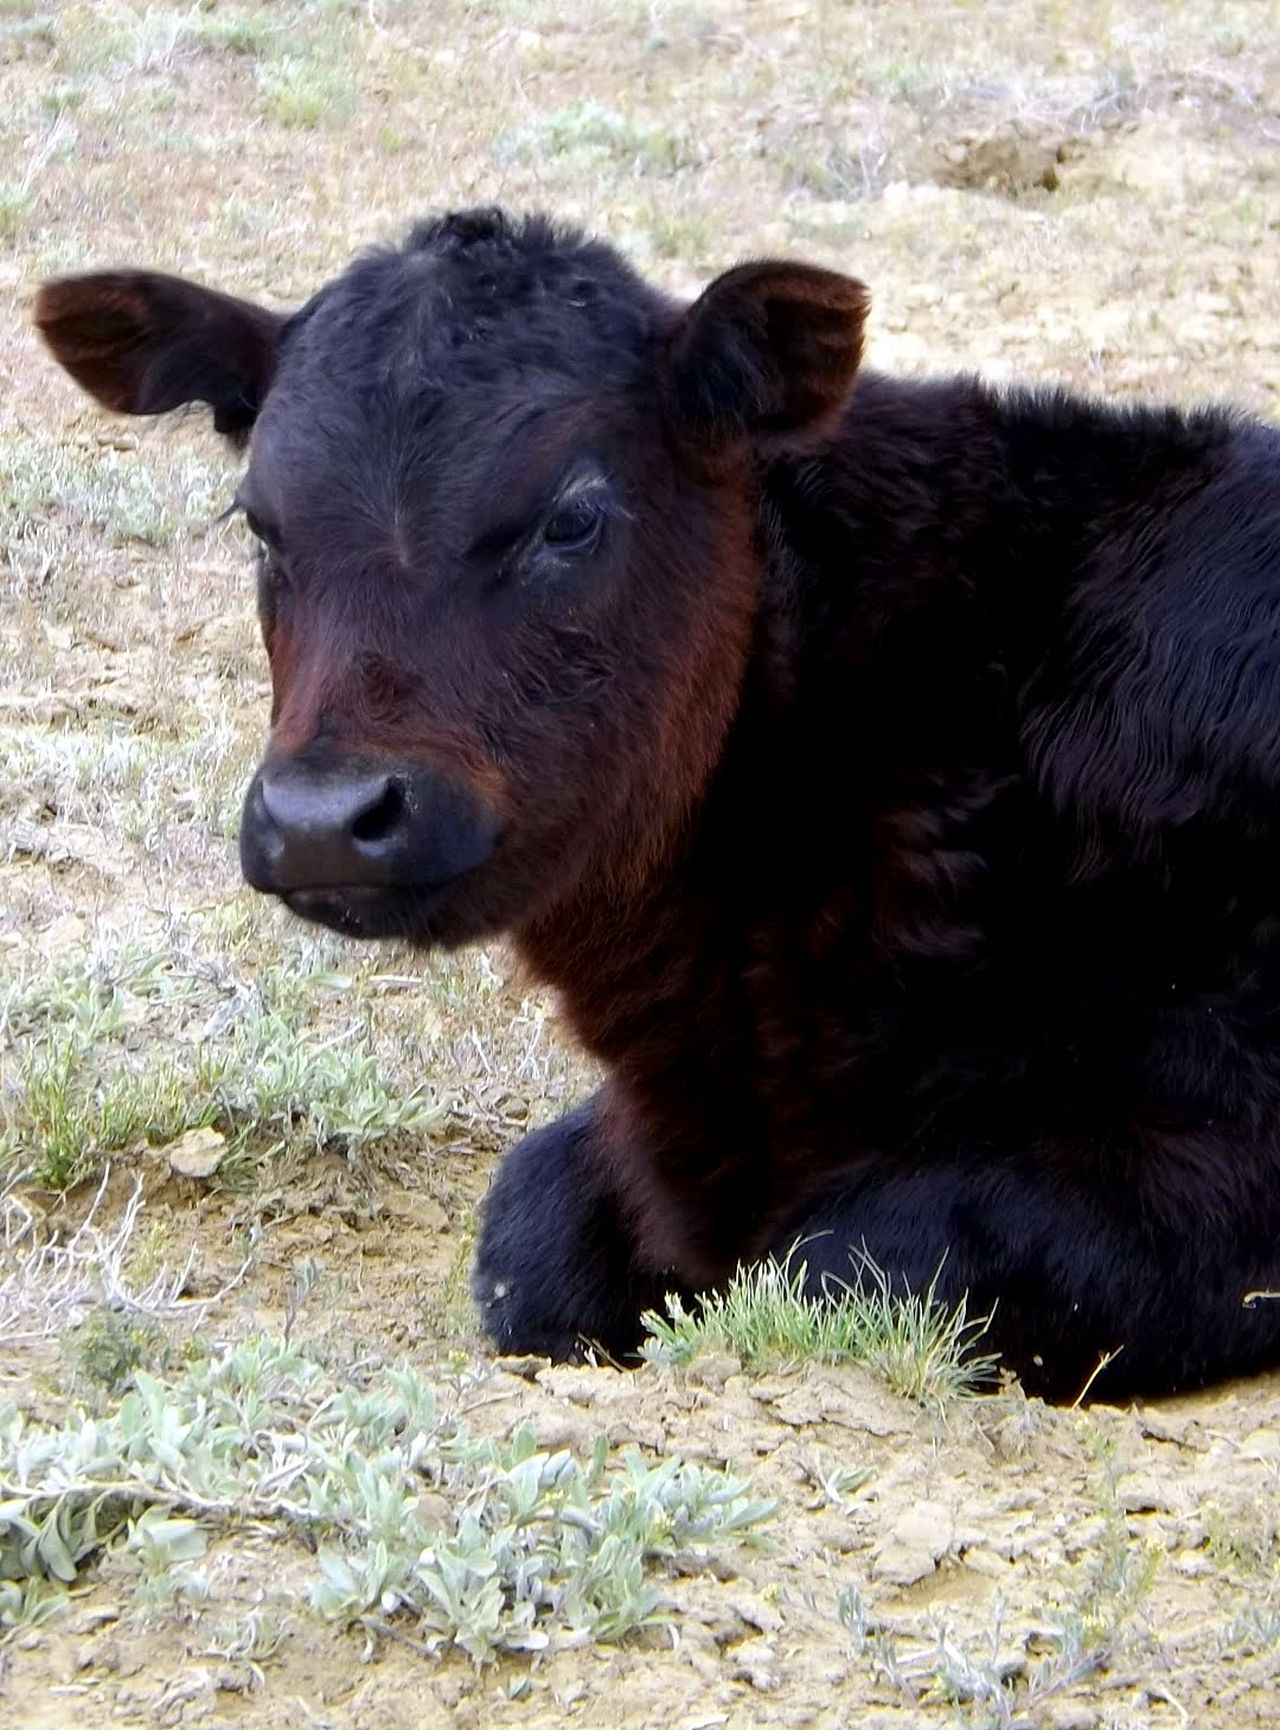 Angus Angus Beef Calf Calf Laying Down Cattle Calf Cattle Country Cattle Farm Cattle Ranch Cattle Ranching Black Calf Calf Face Baby Animals Baby Animal Ranch Life Farm Life Out On The Farm Out On The Ranch On The Range Angus Cattle Wyoming USA Young Cow Cattle Breeding Calf Love Calf Lying Down. Cattle Land